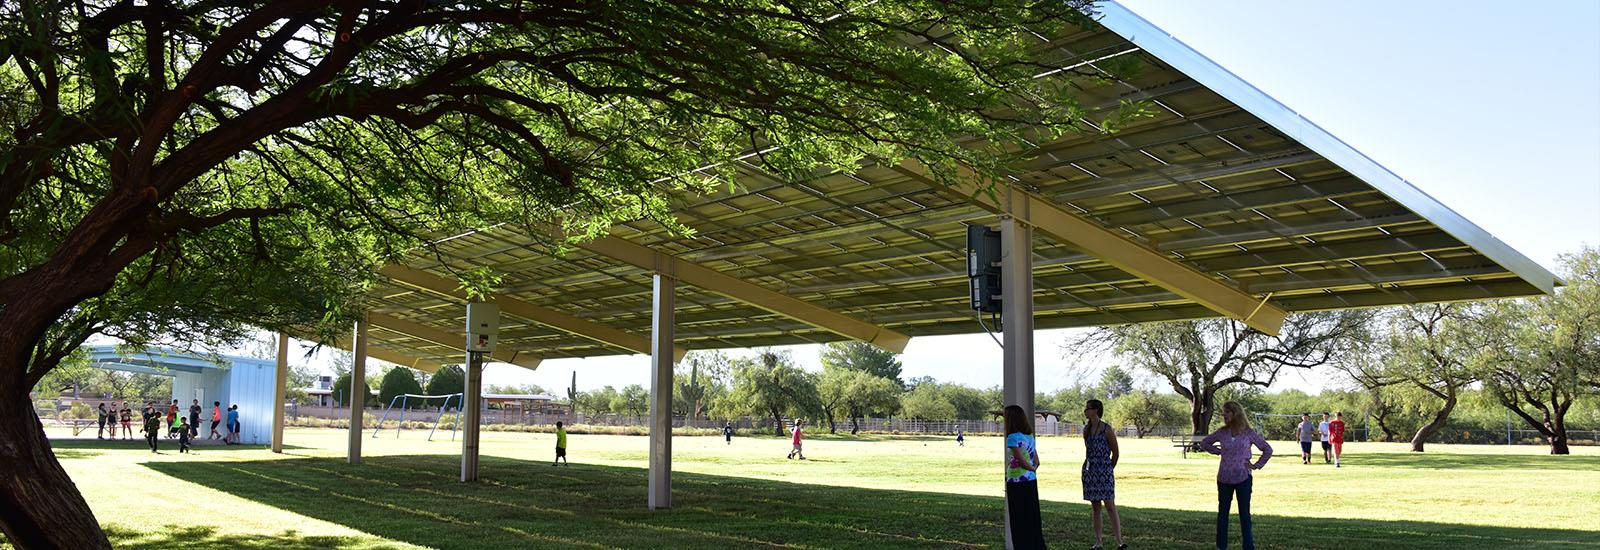 Solar panels offer shade cover in our play area.